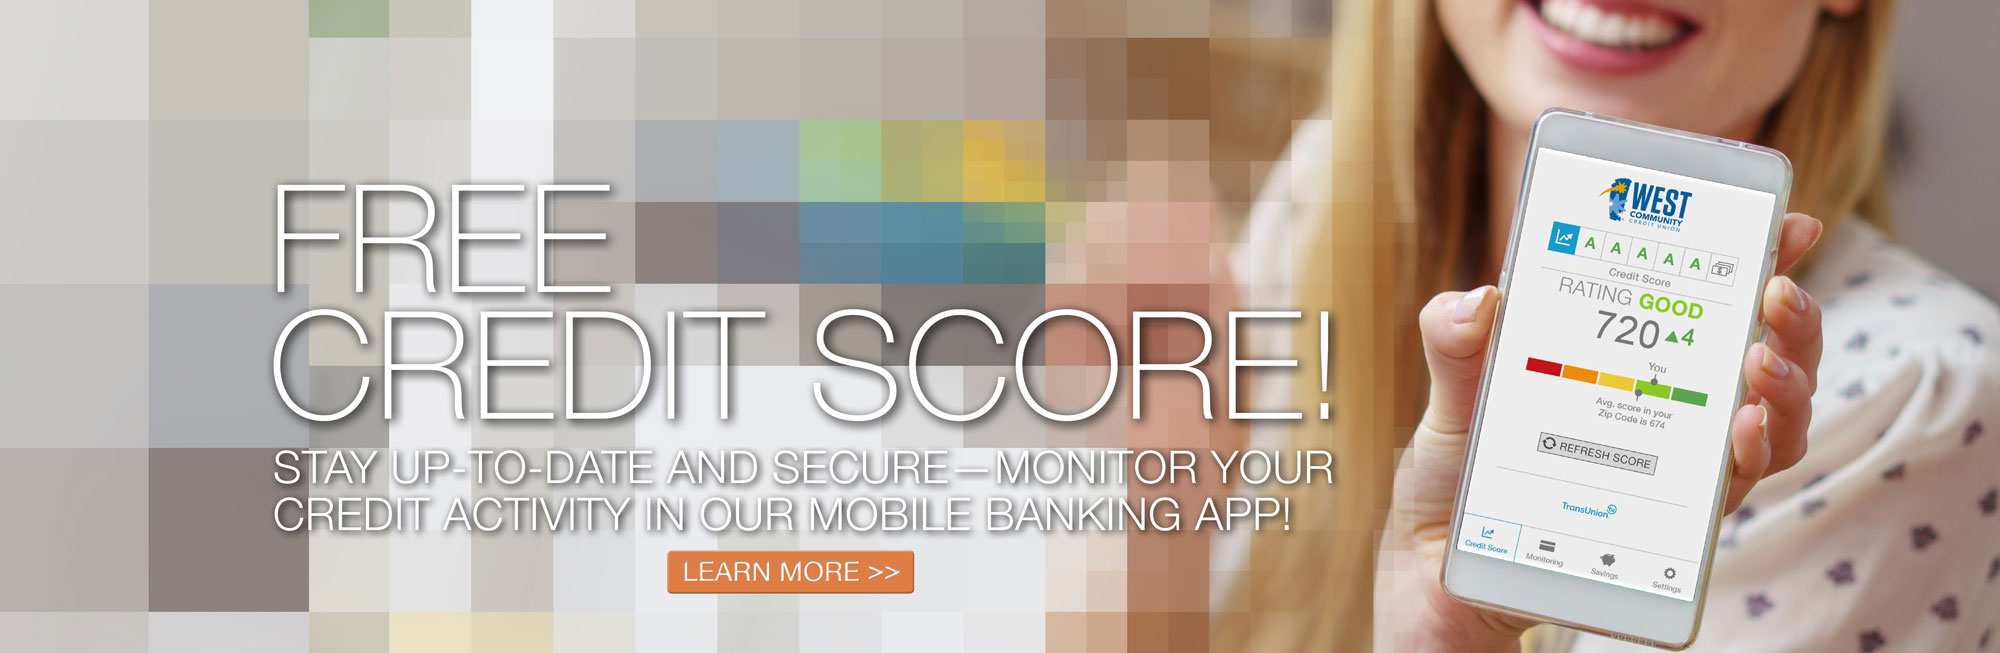 Your Credit Score is Now Available in Mobile Banking! Learn More.